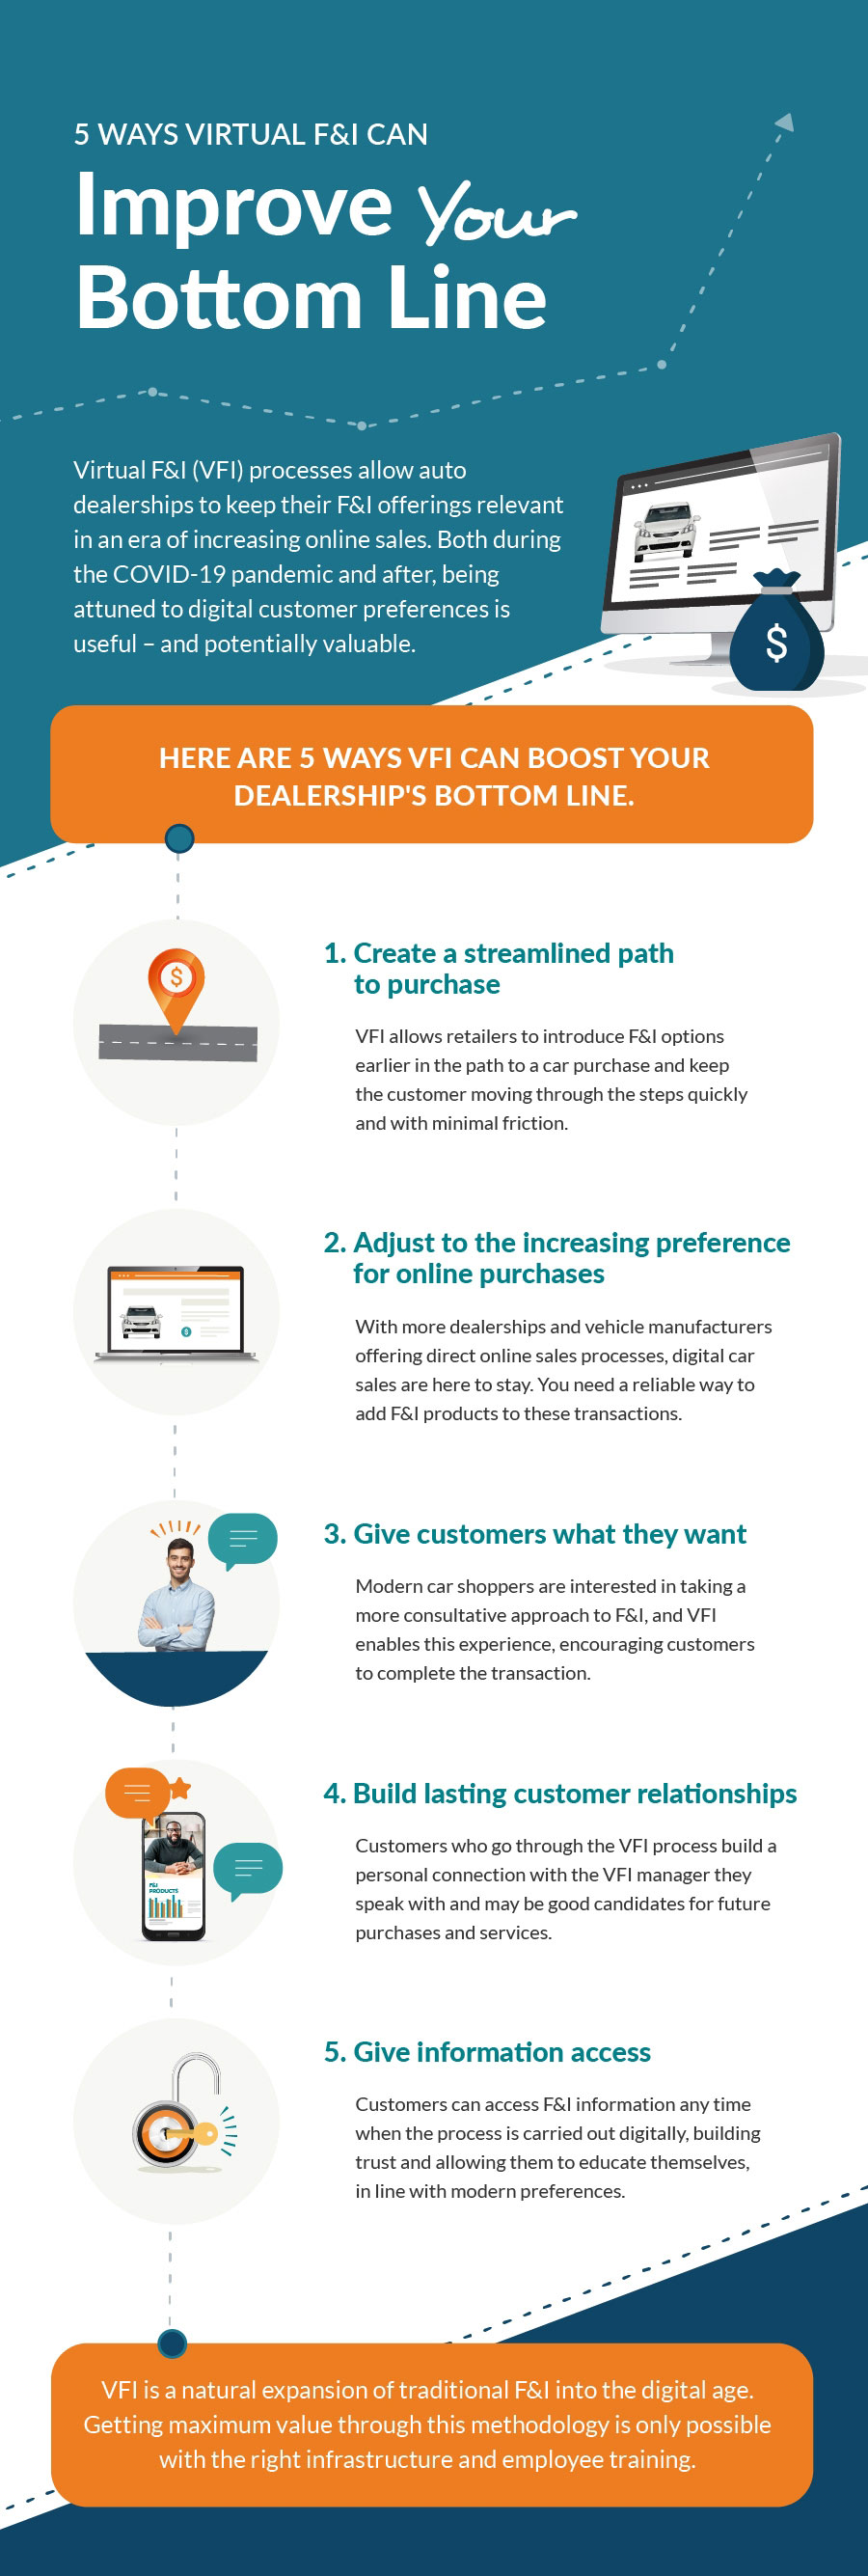 img-20200729-intro-to-vfi-improve-your-bottom-line-blog-infographic